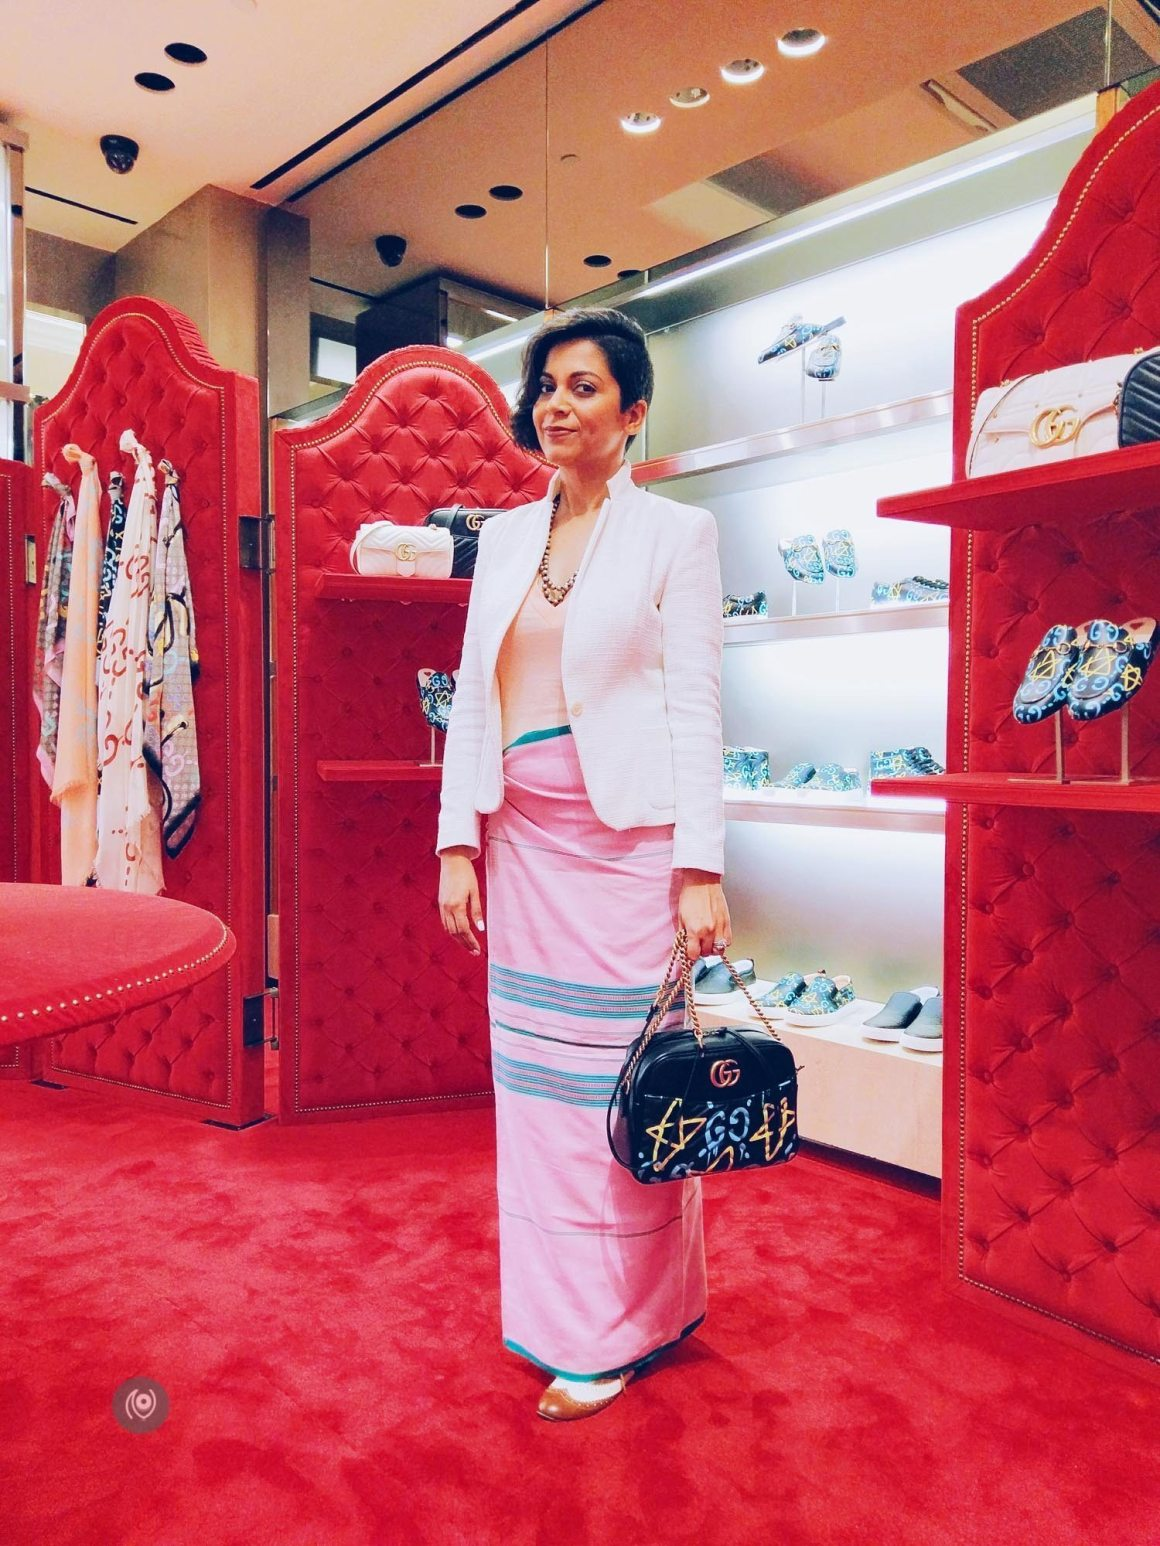 Naina.co, Visual Storyteller, Luxury Brands, Naina Redhu, Professional Photographer, Experience Collector, Luxury Photographer, Luxury Blogger, Lifestyle, Visual Storyteller for Luxury Brands, EyesForLuxury, Luxury Blogger, Lifestyle Blogger, Luxury Photographer India, Lifestyle Photographer India, Luxury Blogger India, Lifestyle Blogger India, Personal Style Blogger, Personal Style Photographer, Personal Style, Event Photographer, Event Blogger, Event Photographer India, Event Blogger India, #GucciGhost, #EyesForLuxury, DLF Emporio, Gucci India, Luxury Brand, Touble Andrew, Gucci Ghost, Trouble Andrew